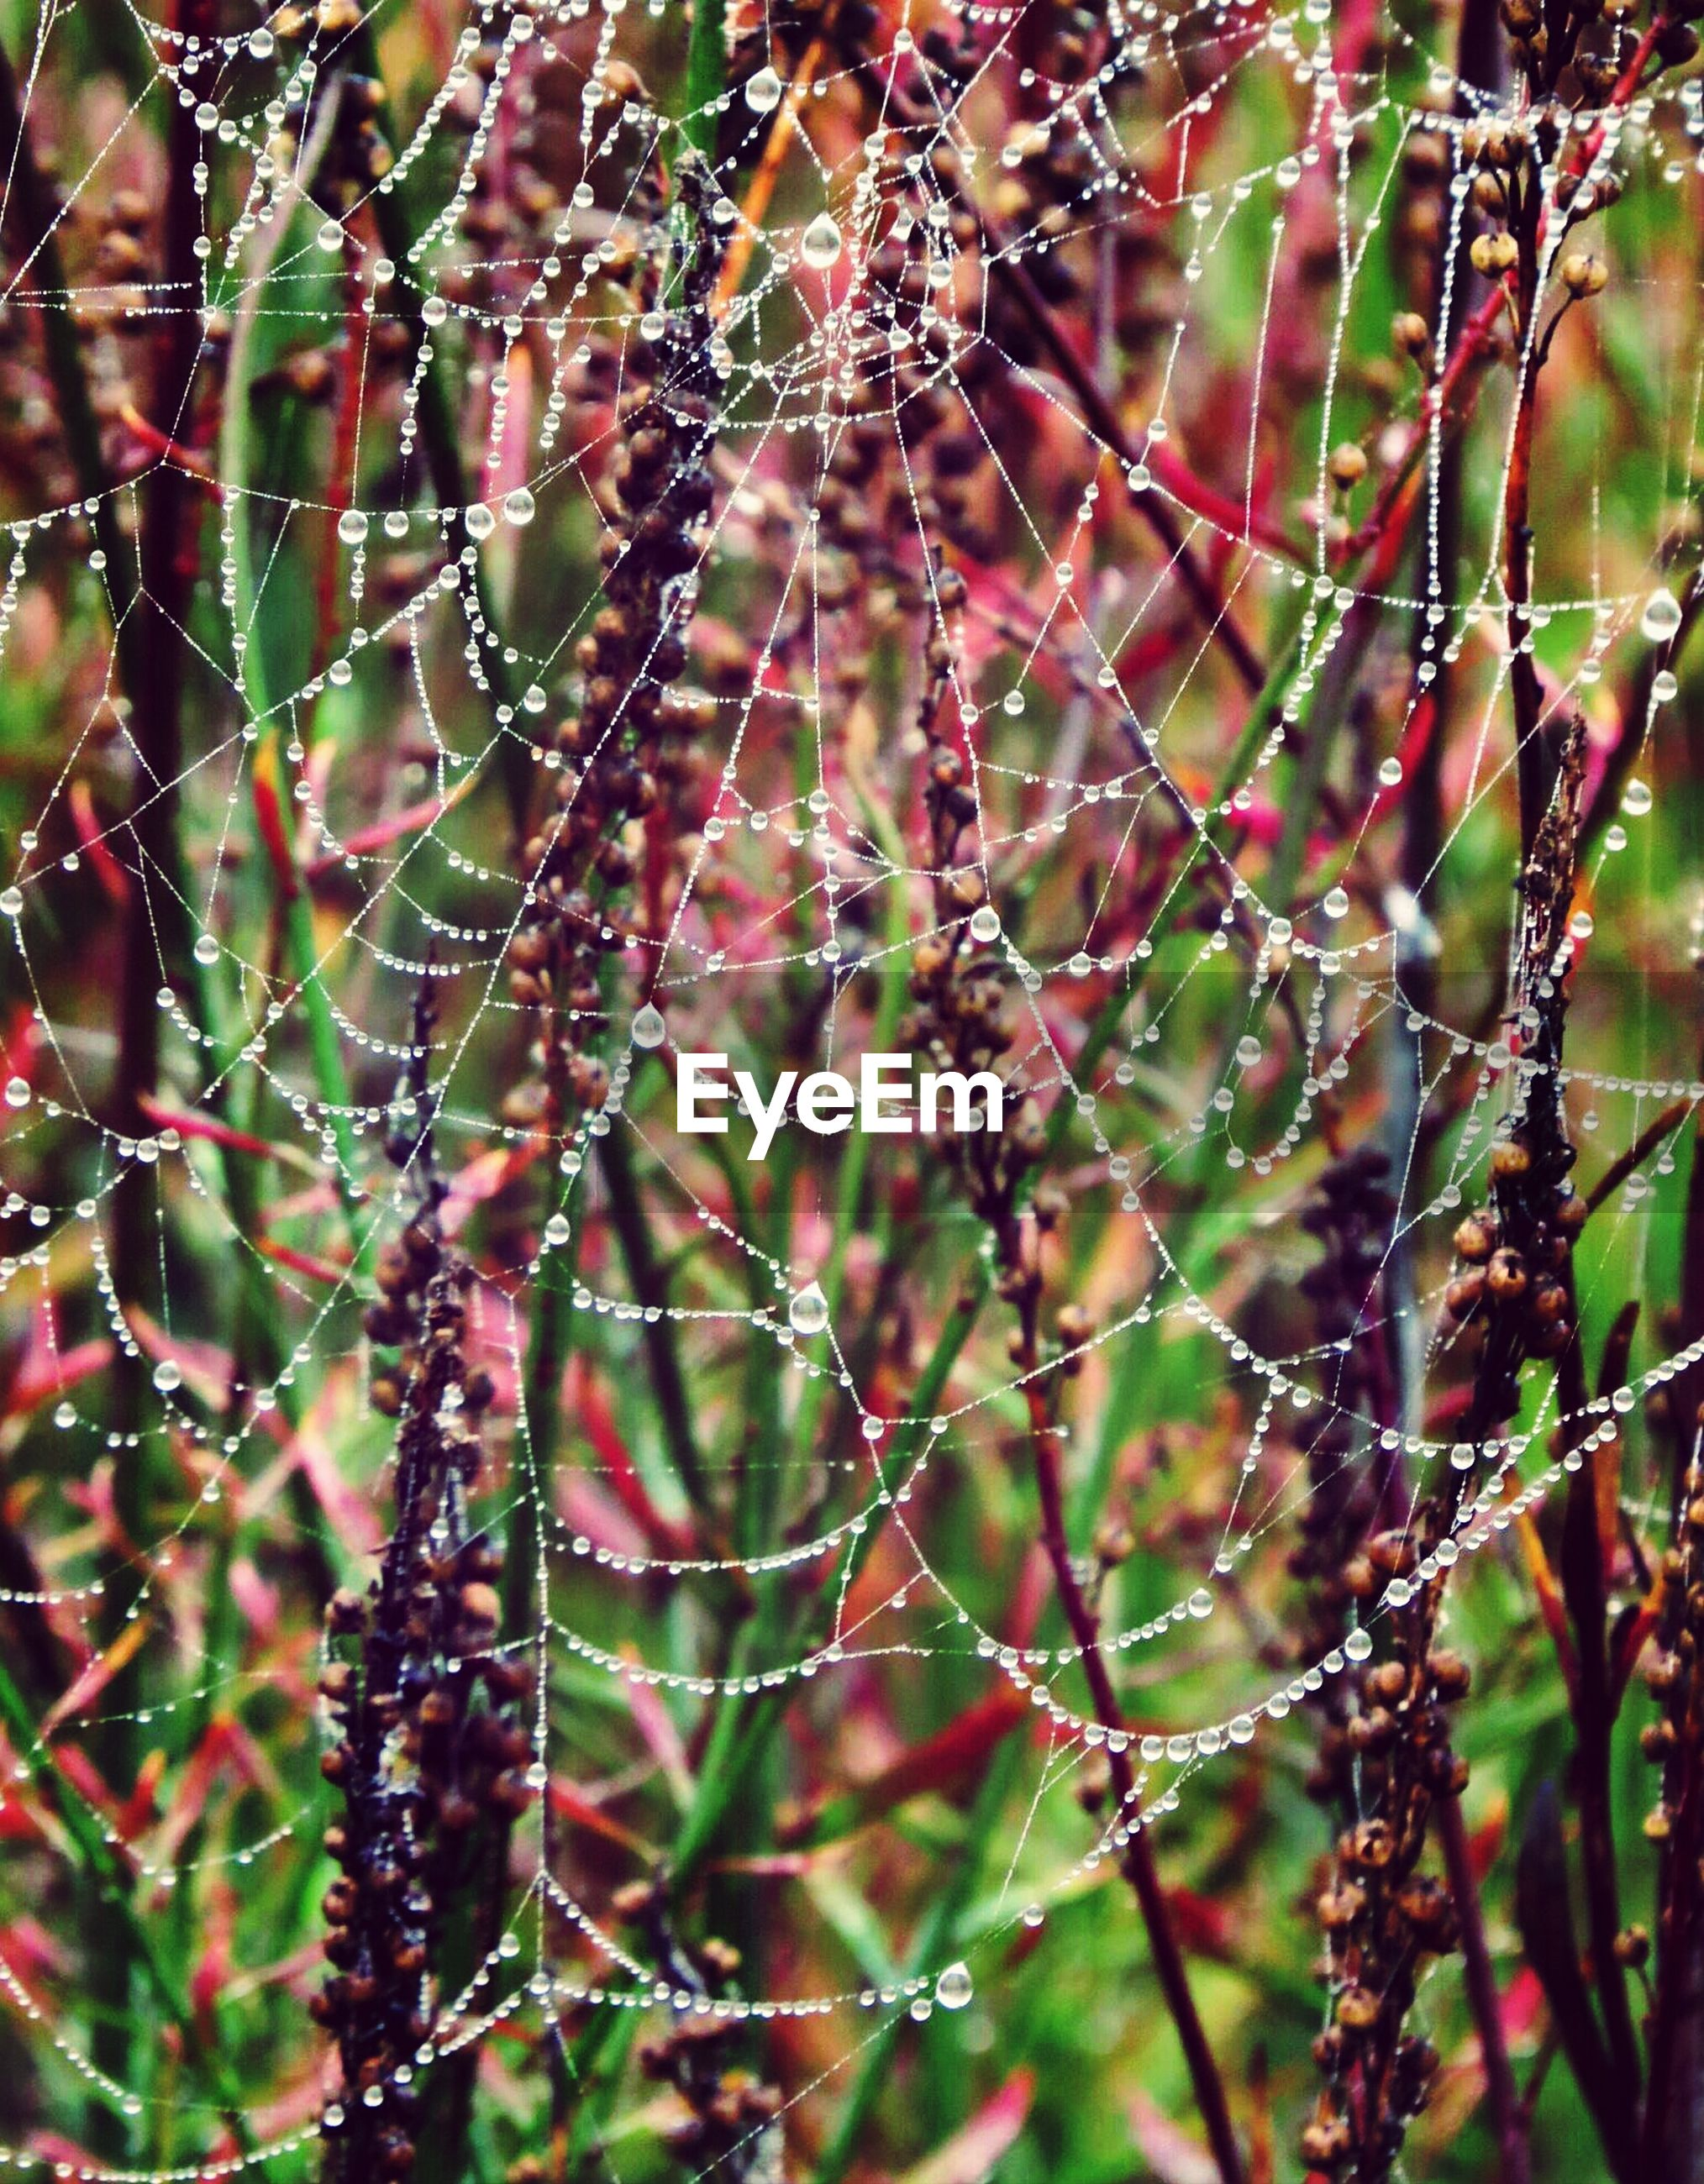 focus on foreground, close-up, growth, plant, branch, spider web, nature, twig, beauty in nature, tree, selective focus, day, outdoors, fragility, freshness, leaf, natural pattern, forest, no people, tranquility